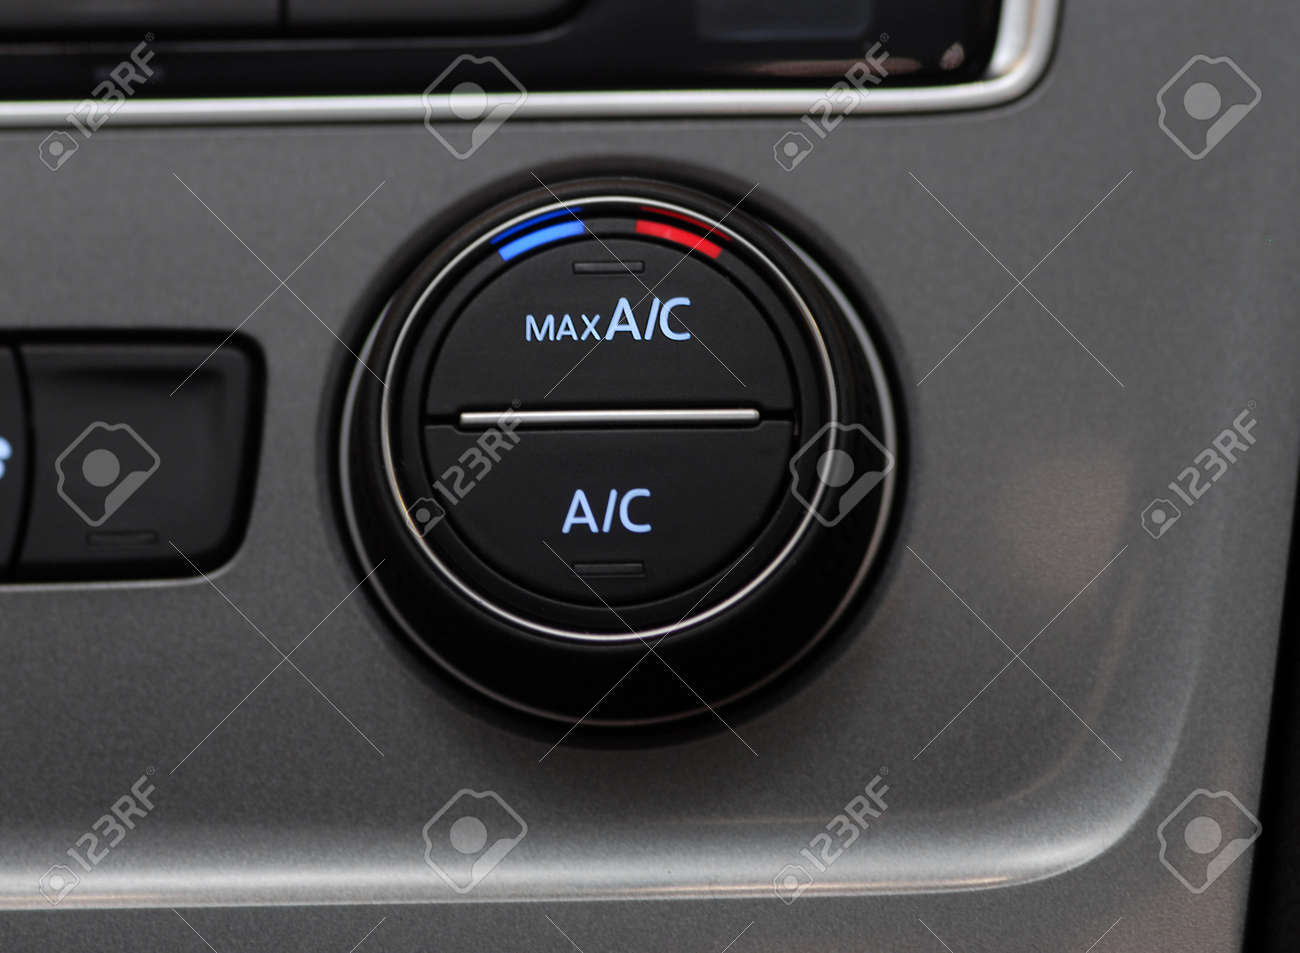 Car Air Conditioner, Manual switch board in the car Stock Photo - 33821944